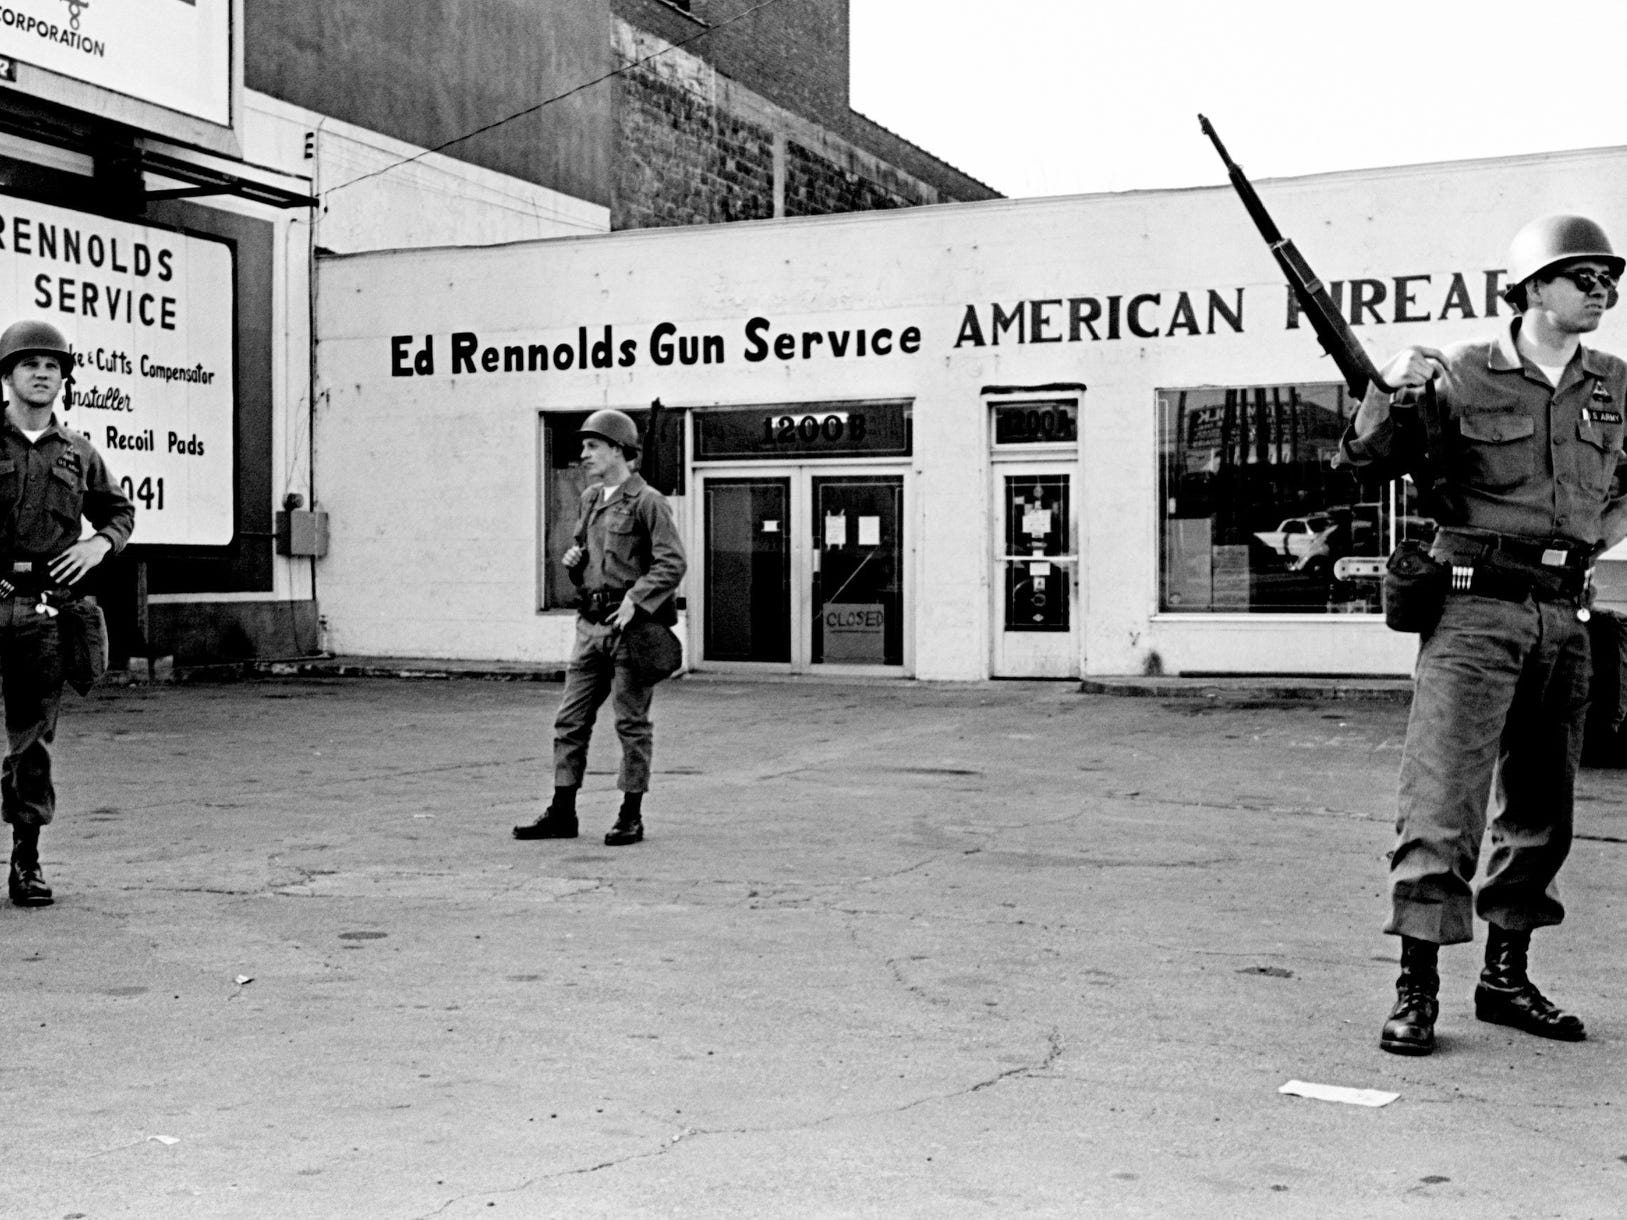 Three National Guardsmen stand on duty at Ed Rennolds Gun Service and American Firearms on 12th Avenue in Nashville on April 6, 1968.